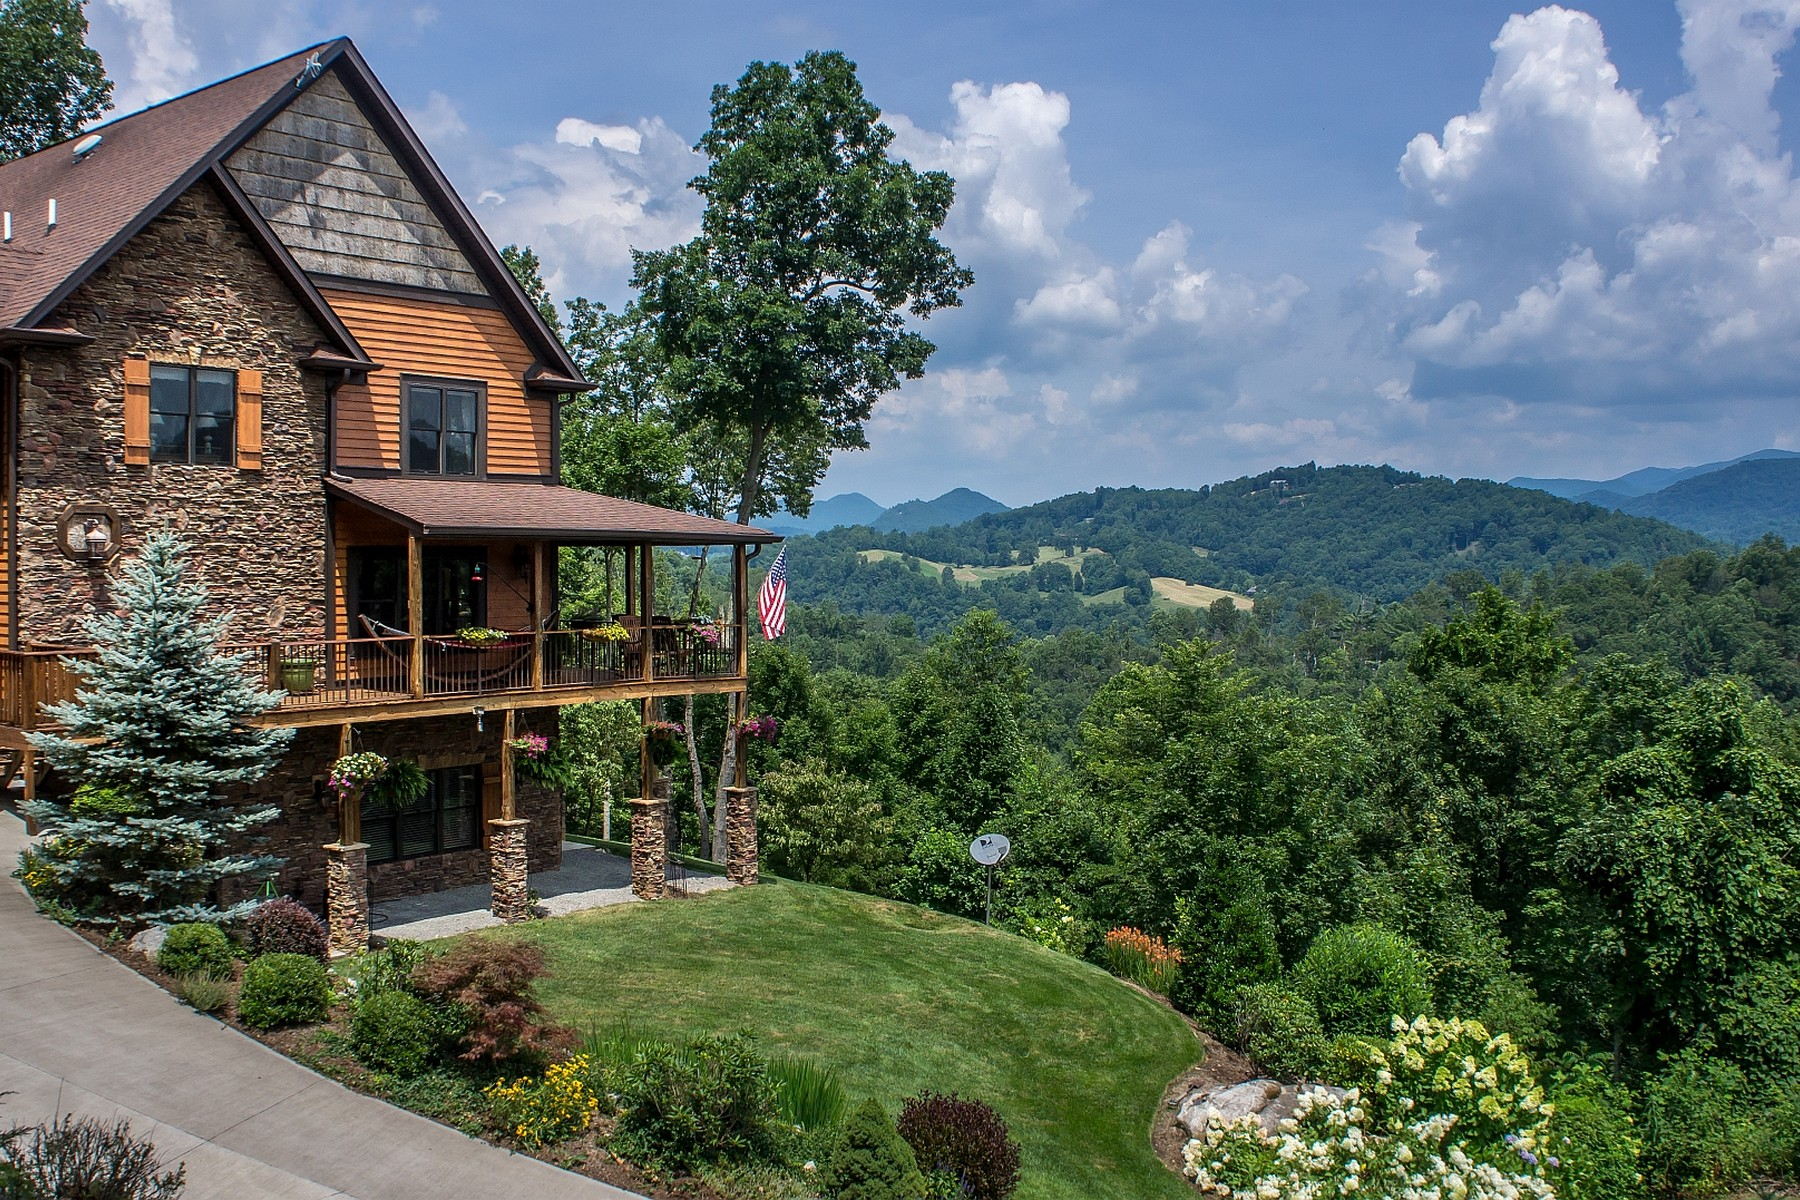 Casa Unifamiliar por un Venta en Spectacular Mountain Chalet 710 Gordon Ridge Road Butler, Tennessee 37640 Estados Unidos